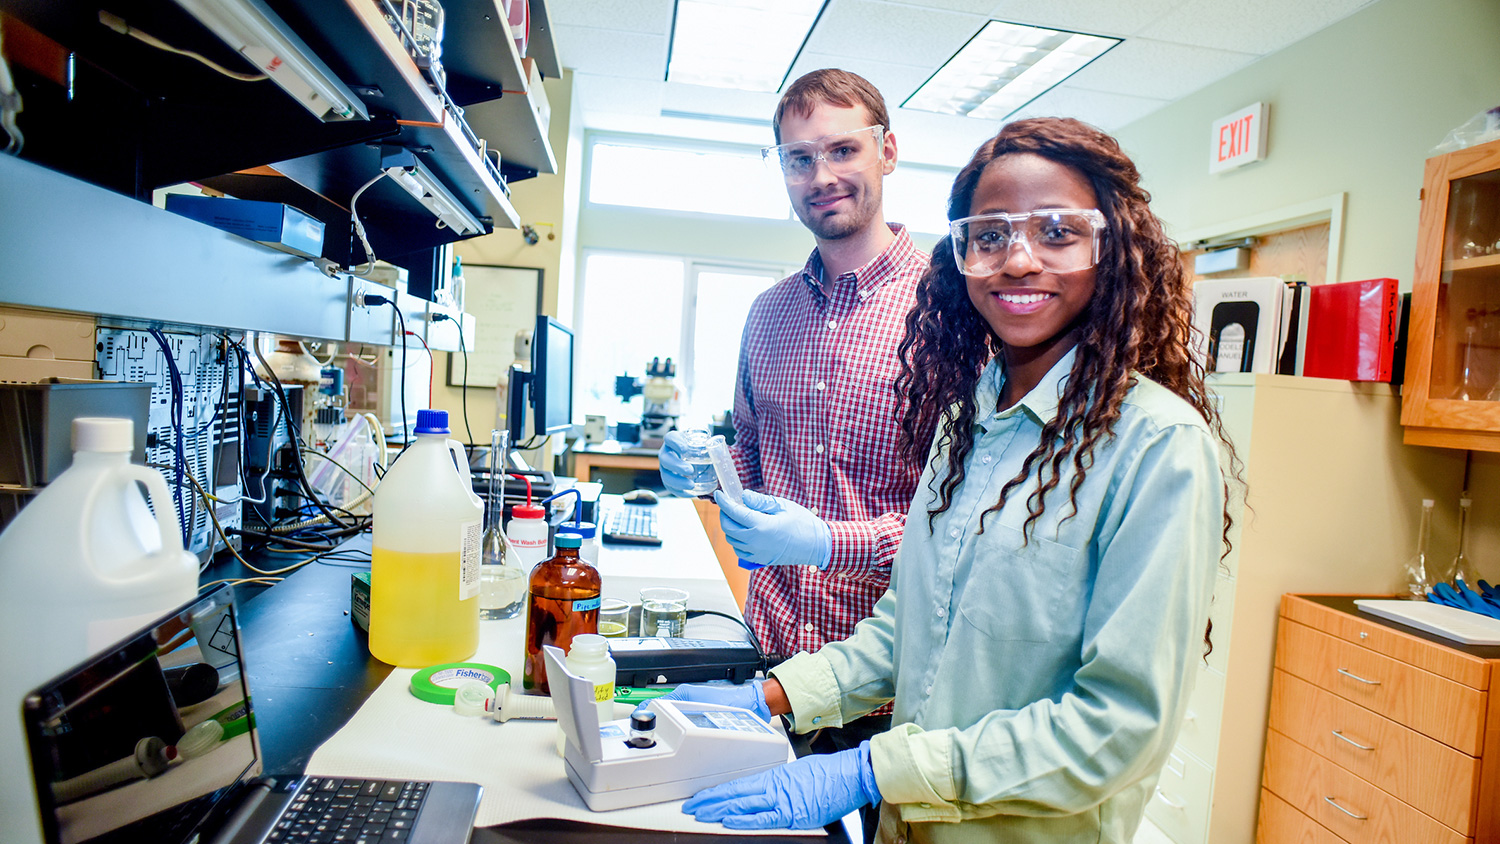 Students and faculty in the lab - Career Connections - College of Natural Resources at NCState University